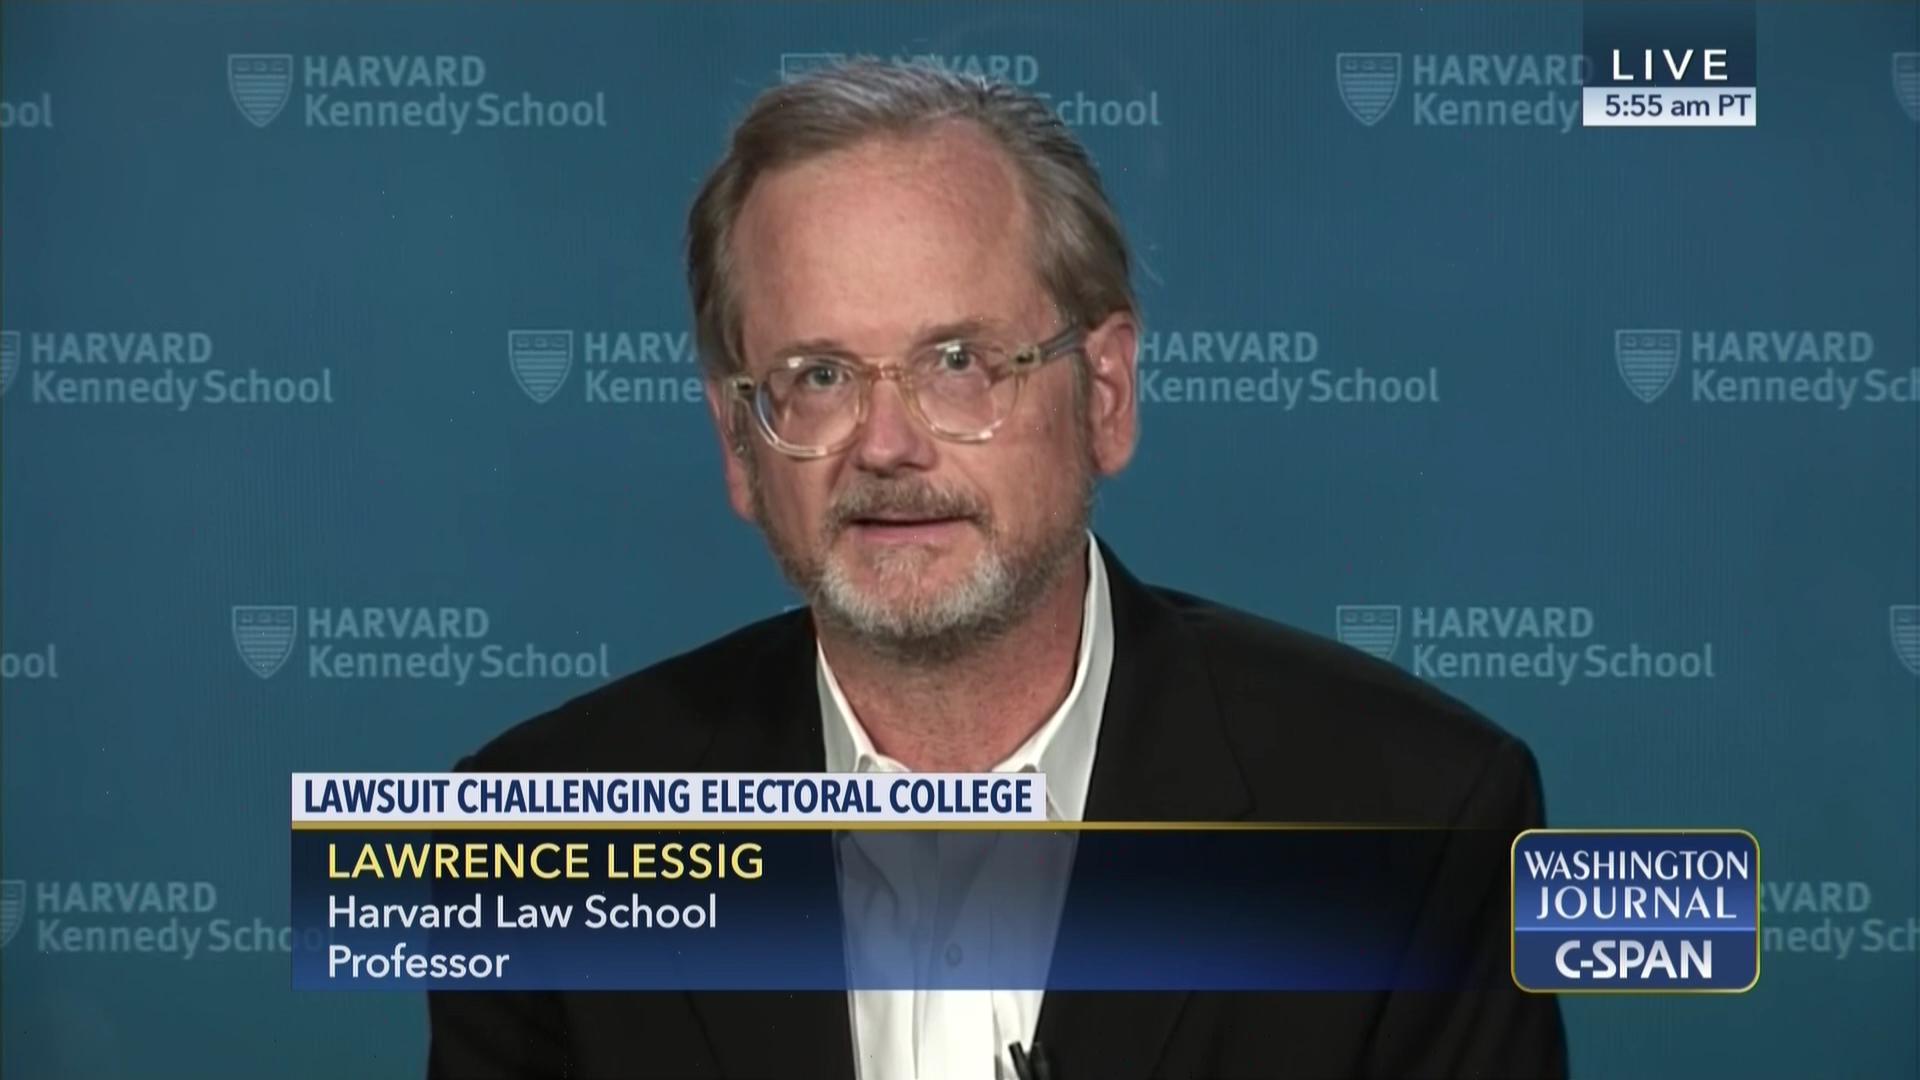 Lawrence Lessig on Legal Challenges to the Electoral College